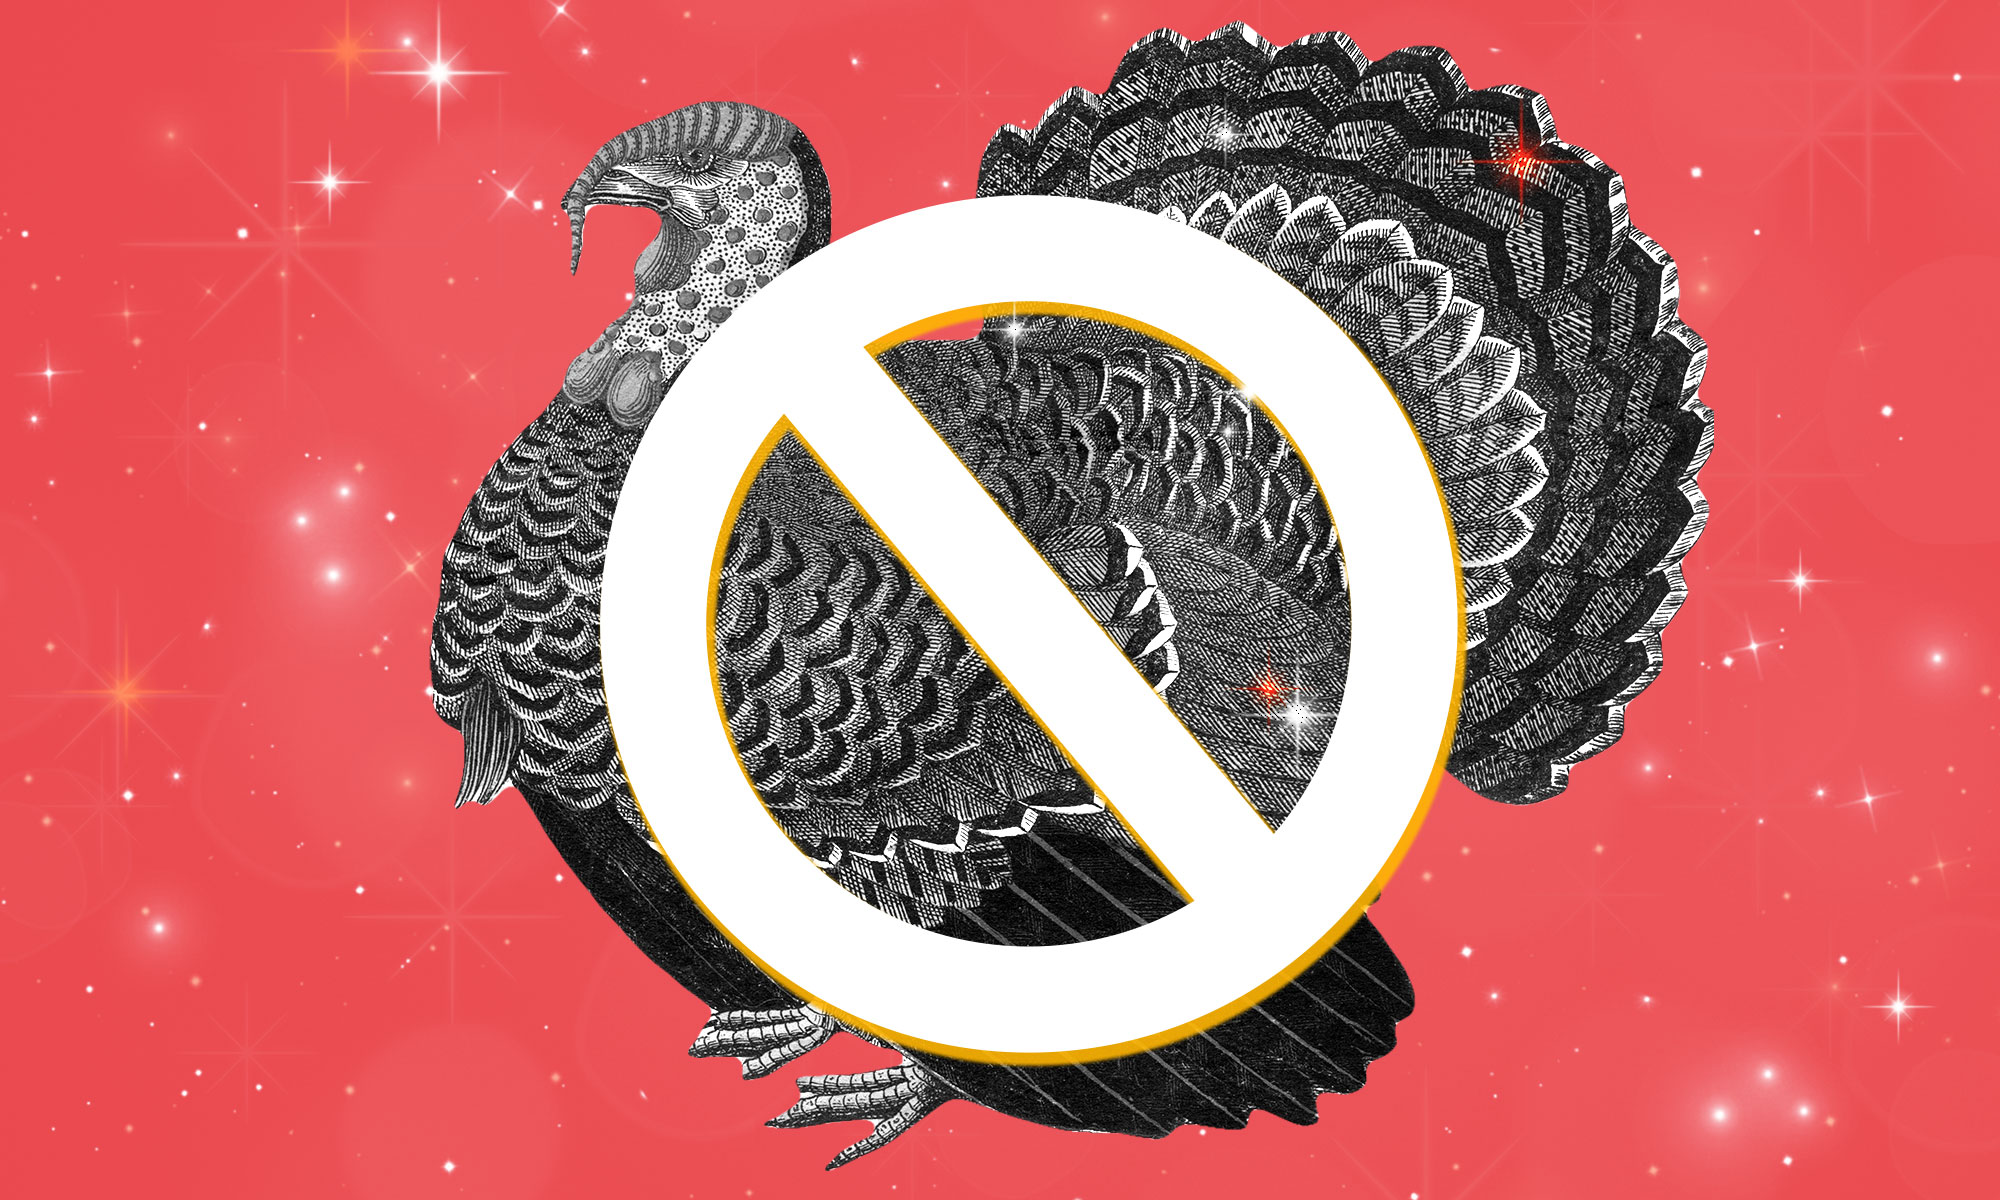 Illustrated image of a turkey with a crossed-out circle on top of it.